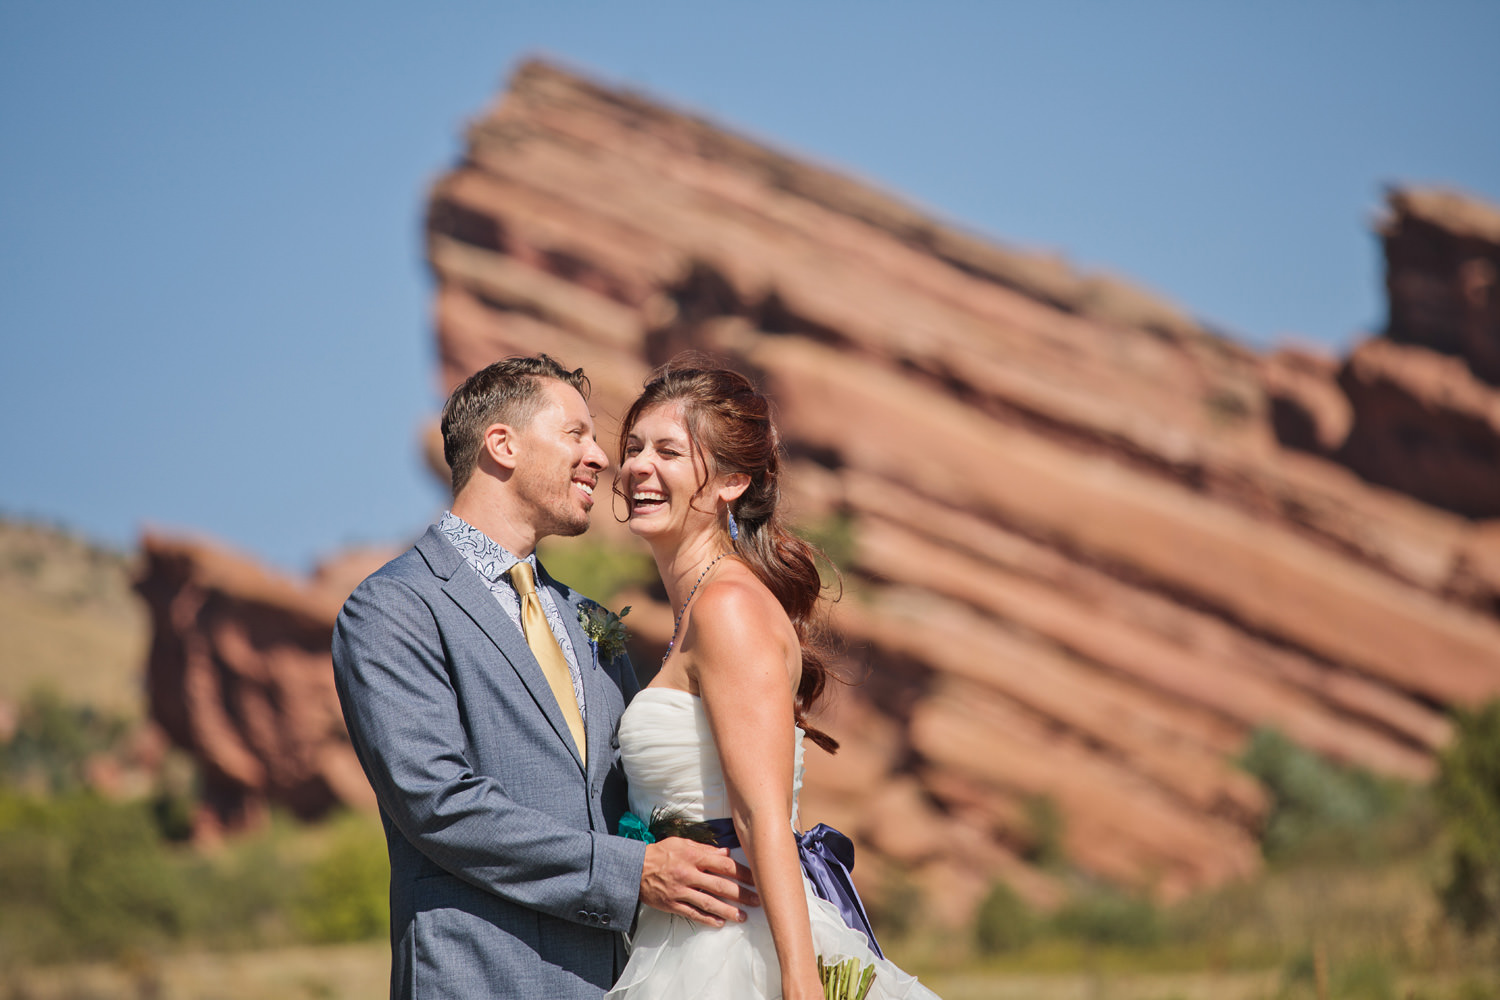 red-rocks-wedding-photographer-denver-tomKphoto-069.jpg